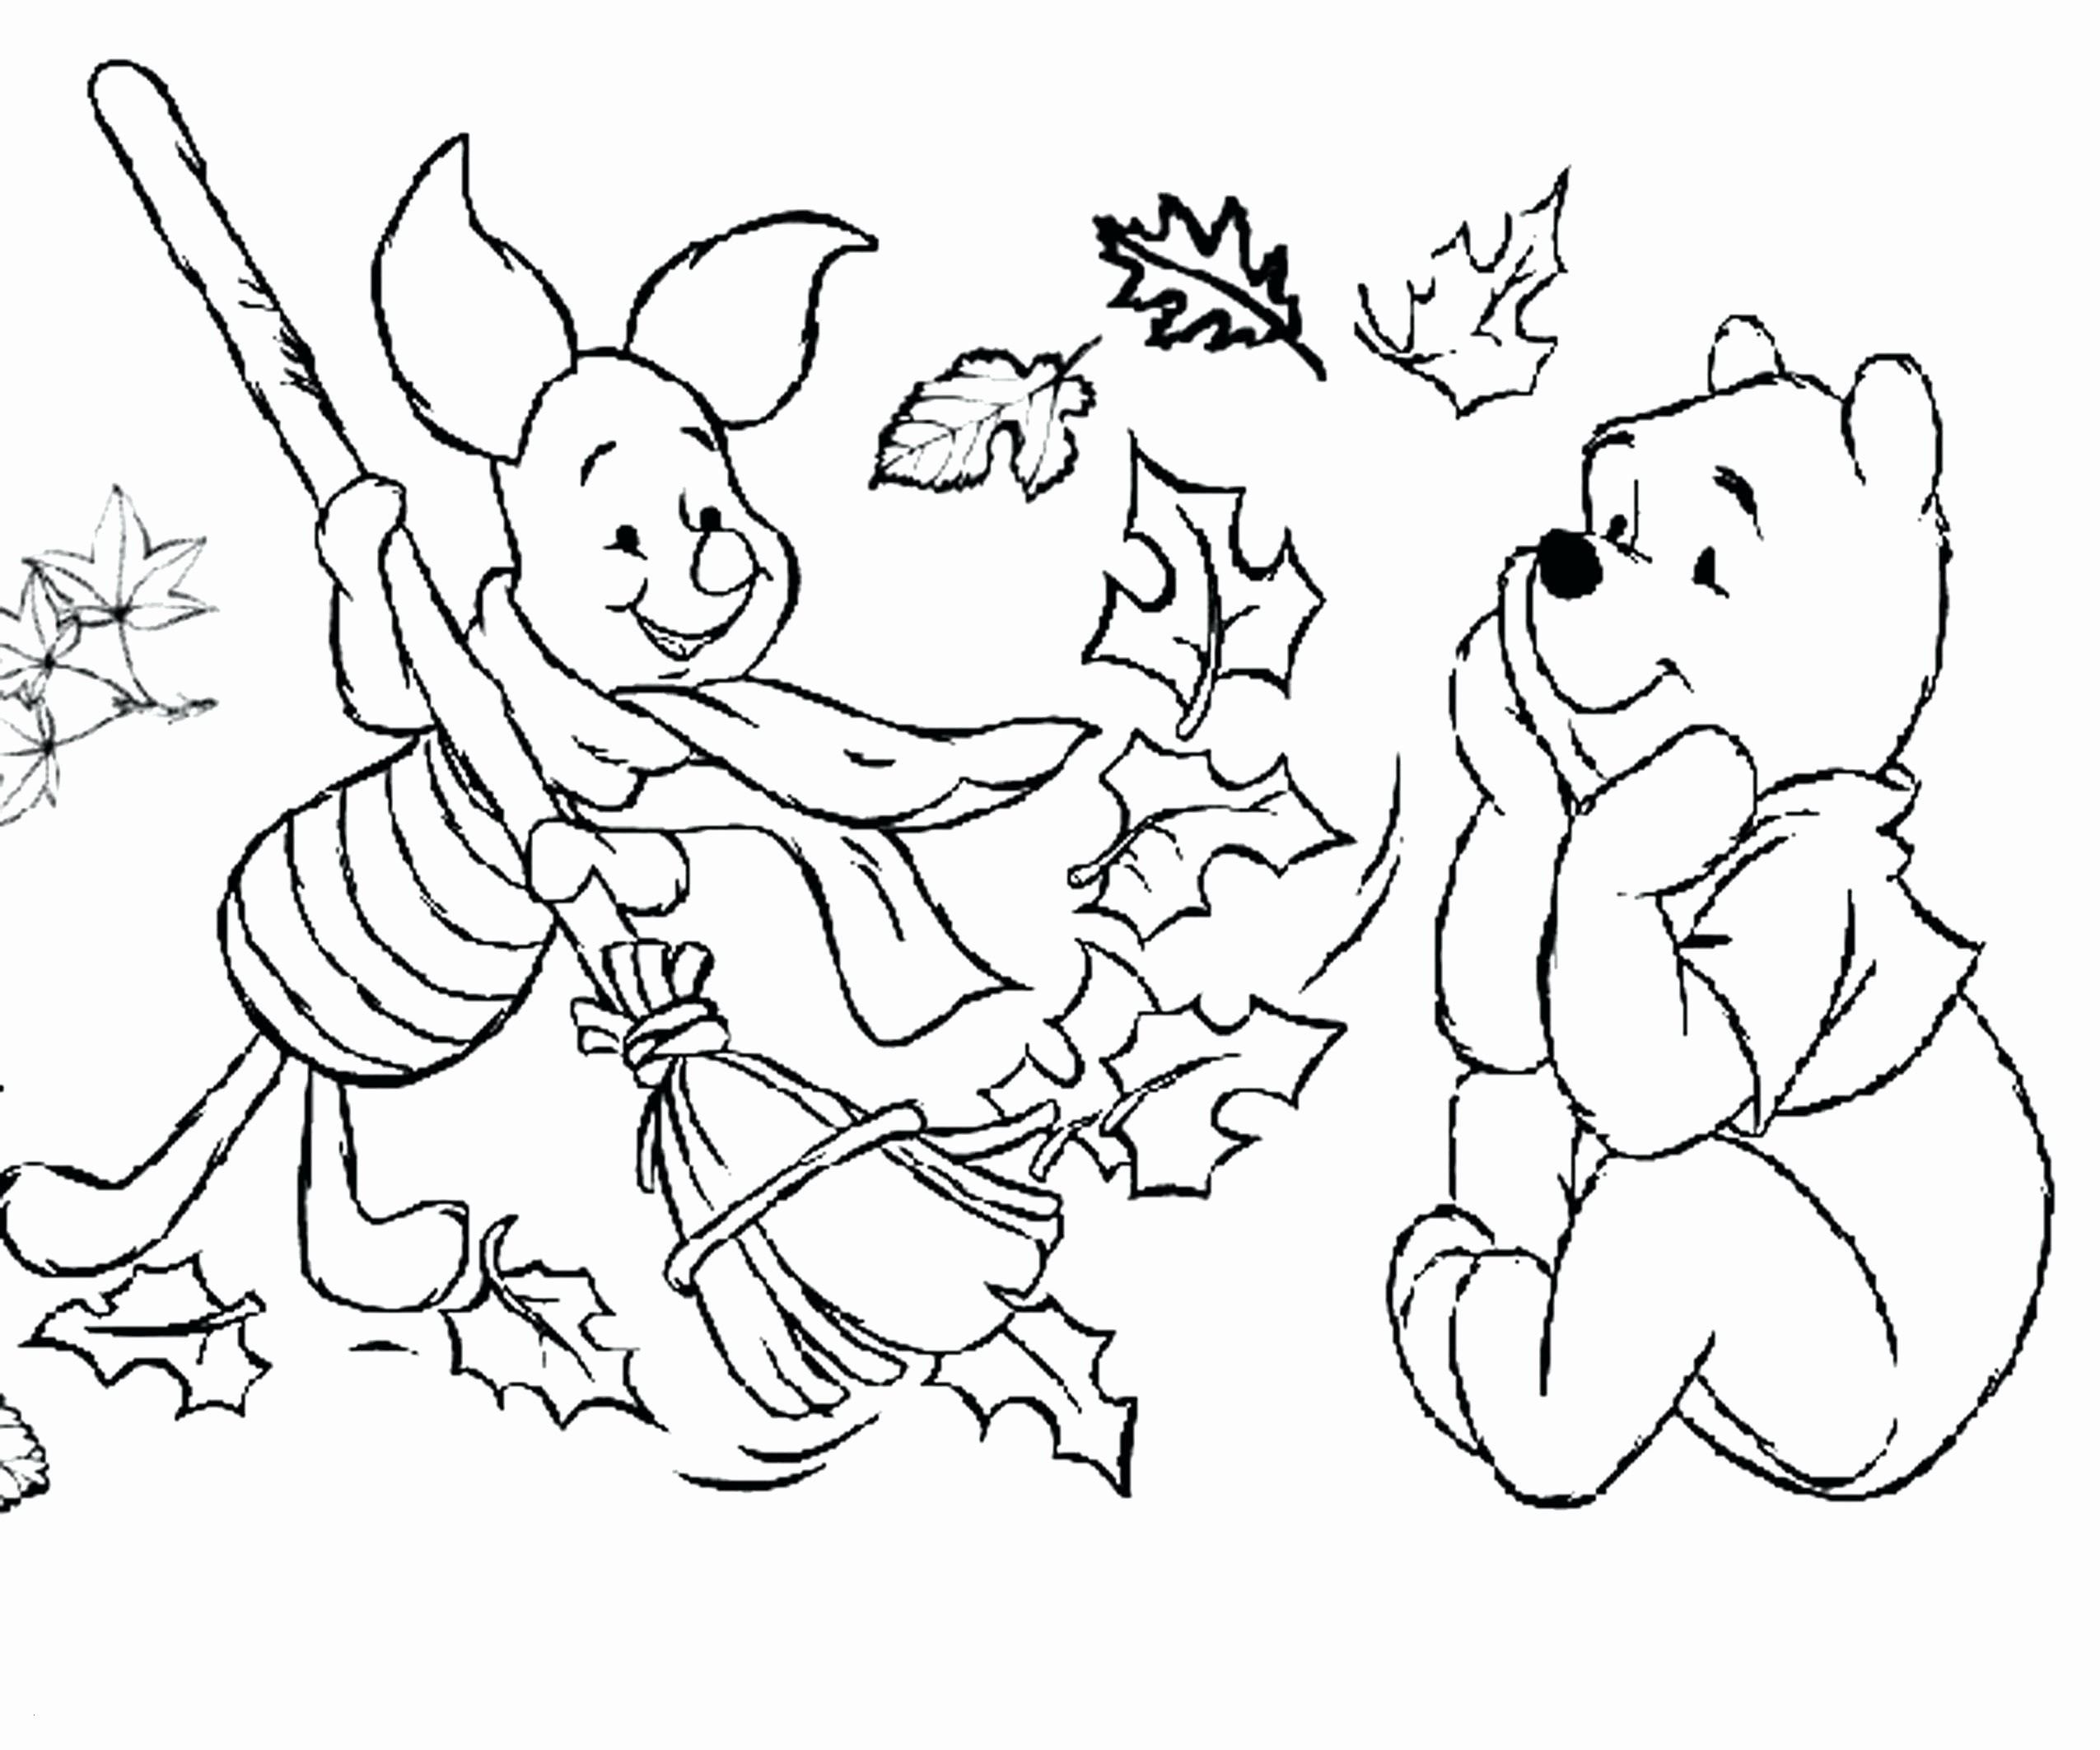 Coloring Pages Family  to Print 15i - Save it to your computer